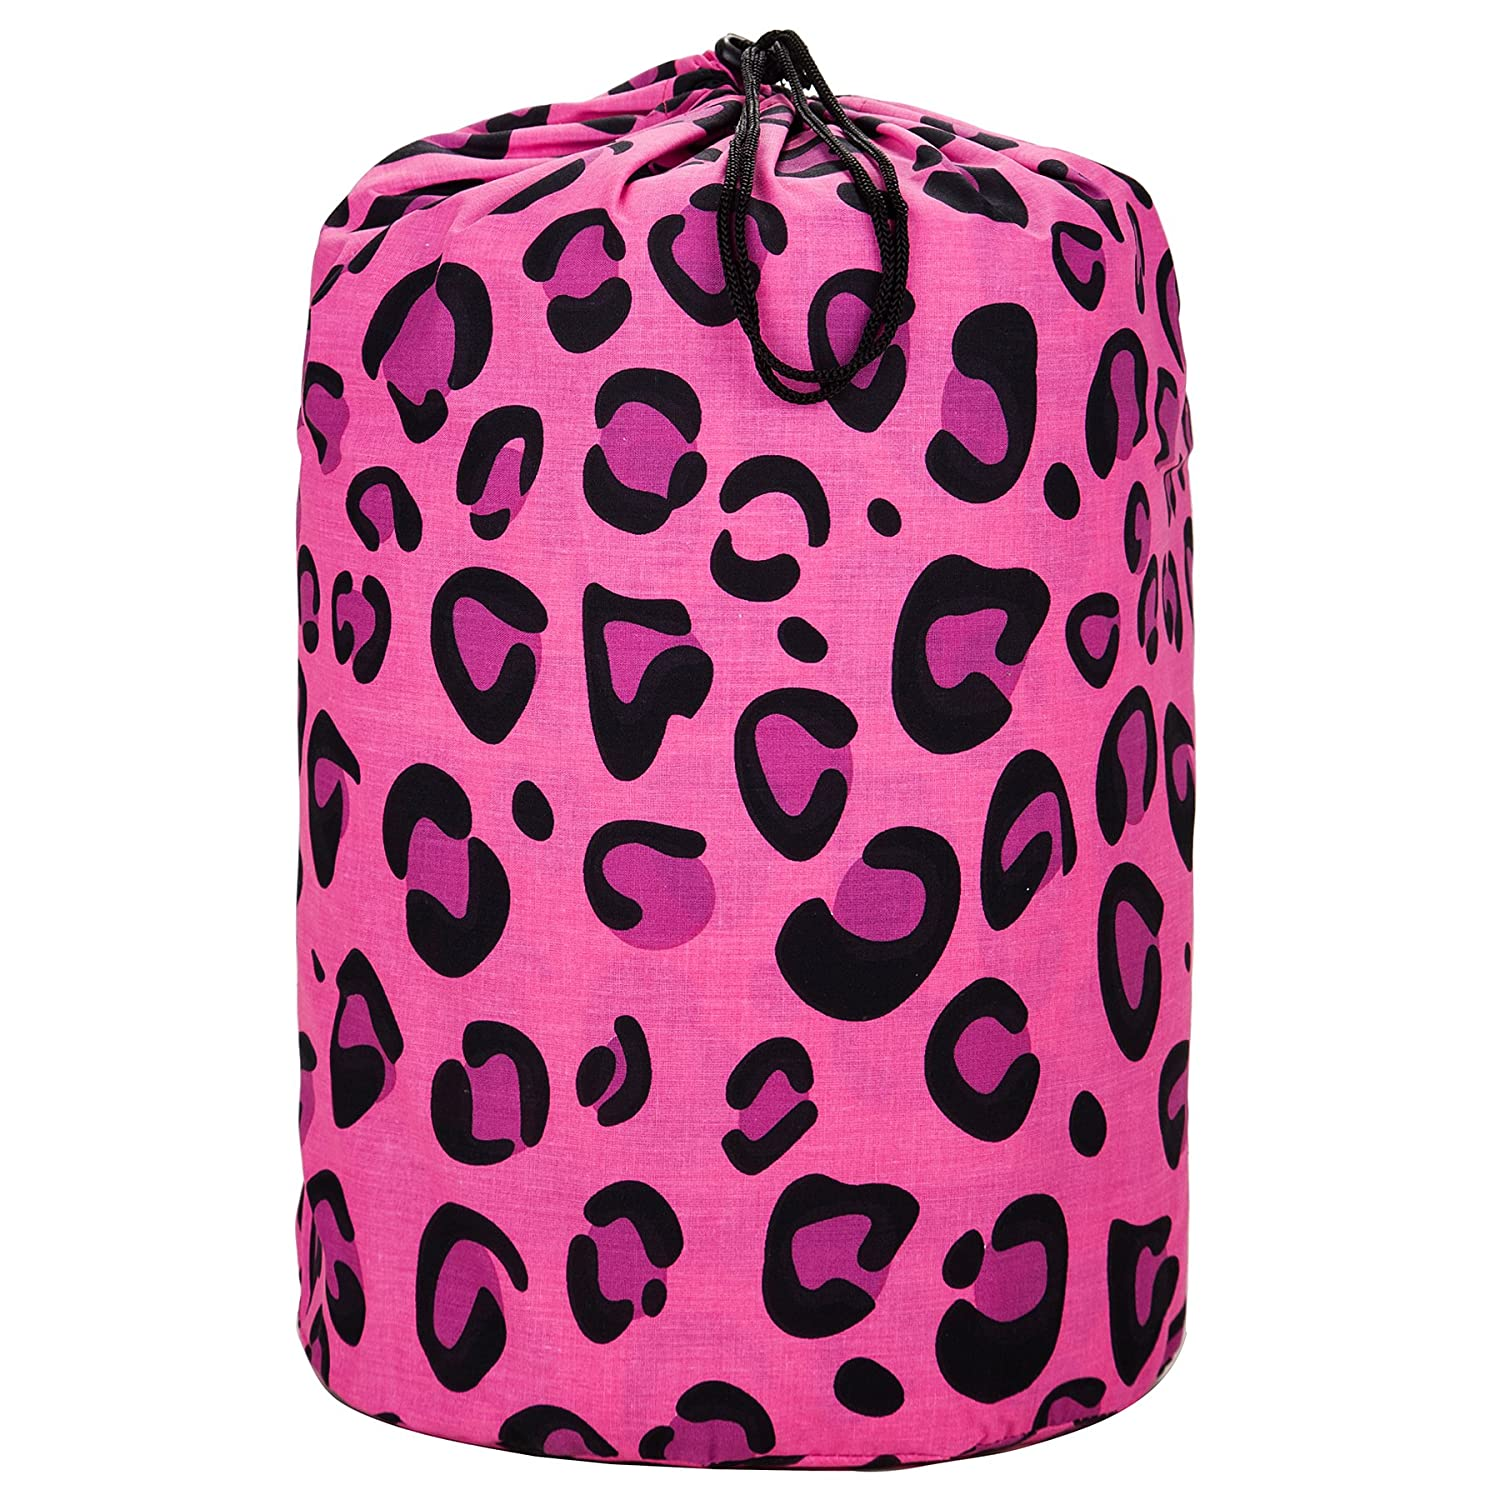 Big Dot Pink 17085 Wildkin Original Sleeping Bag Features Matching Travel Pillow and Coordinating Storage Bag Perfect for Sleeping On-the-Go